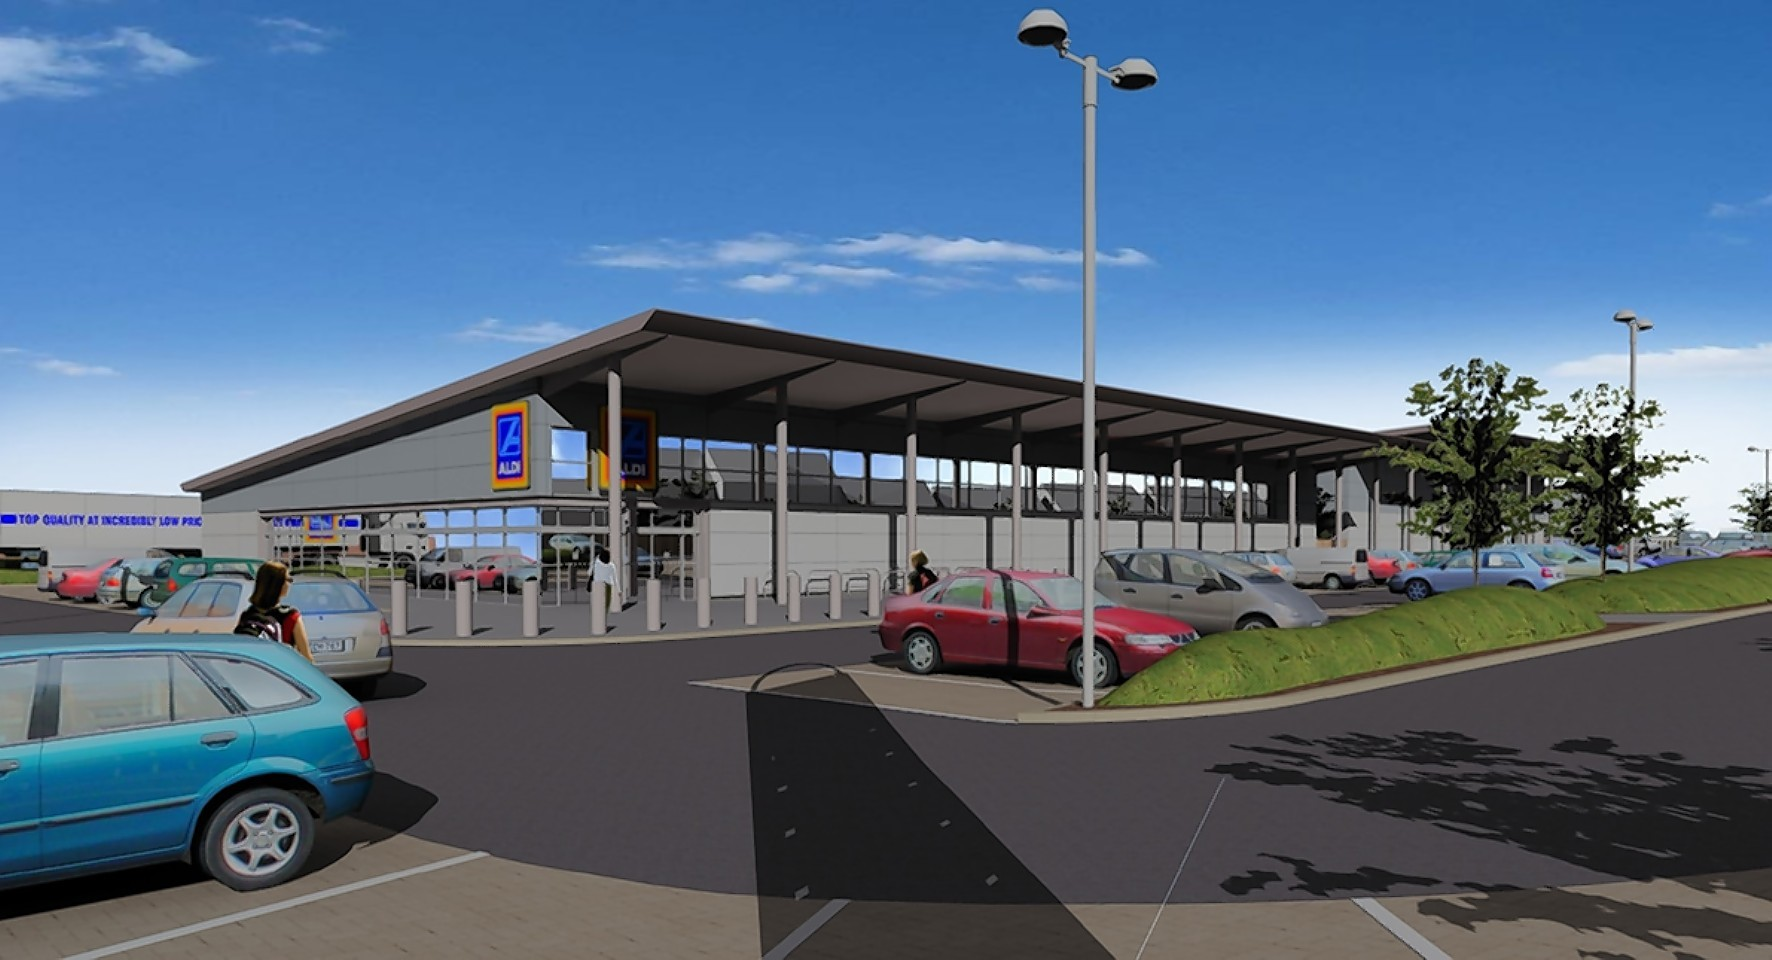 Artist's impression of how the new store may look